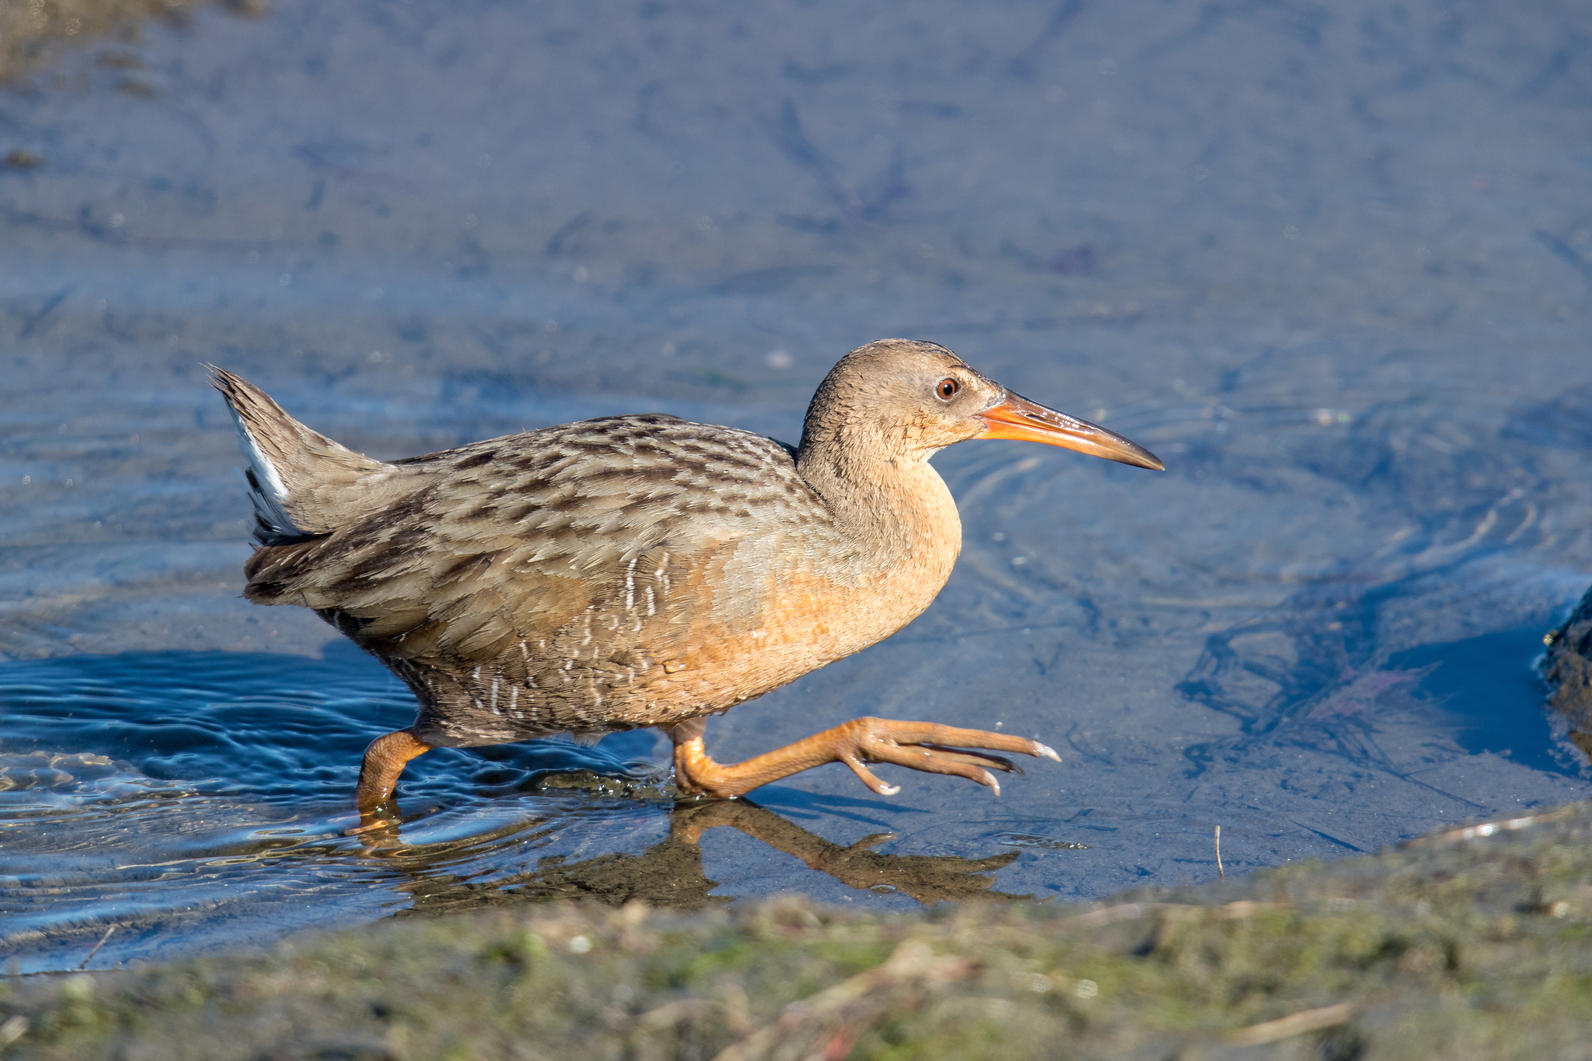 Ridgway's Rail standing in water